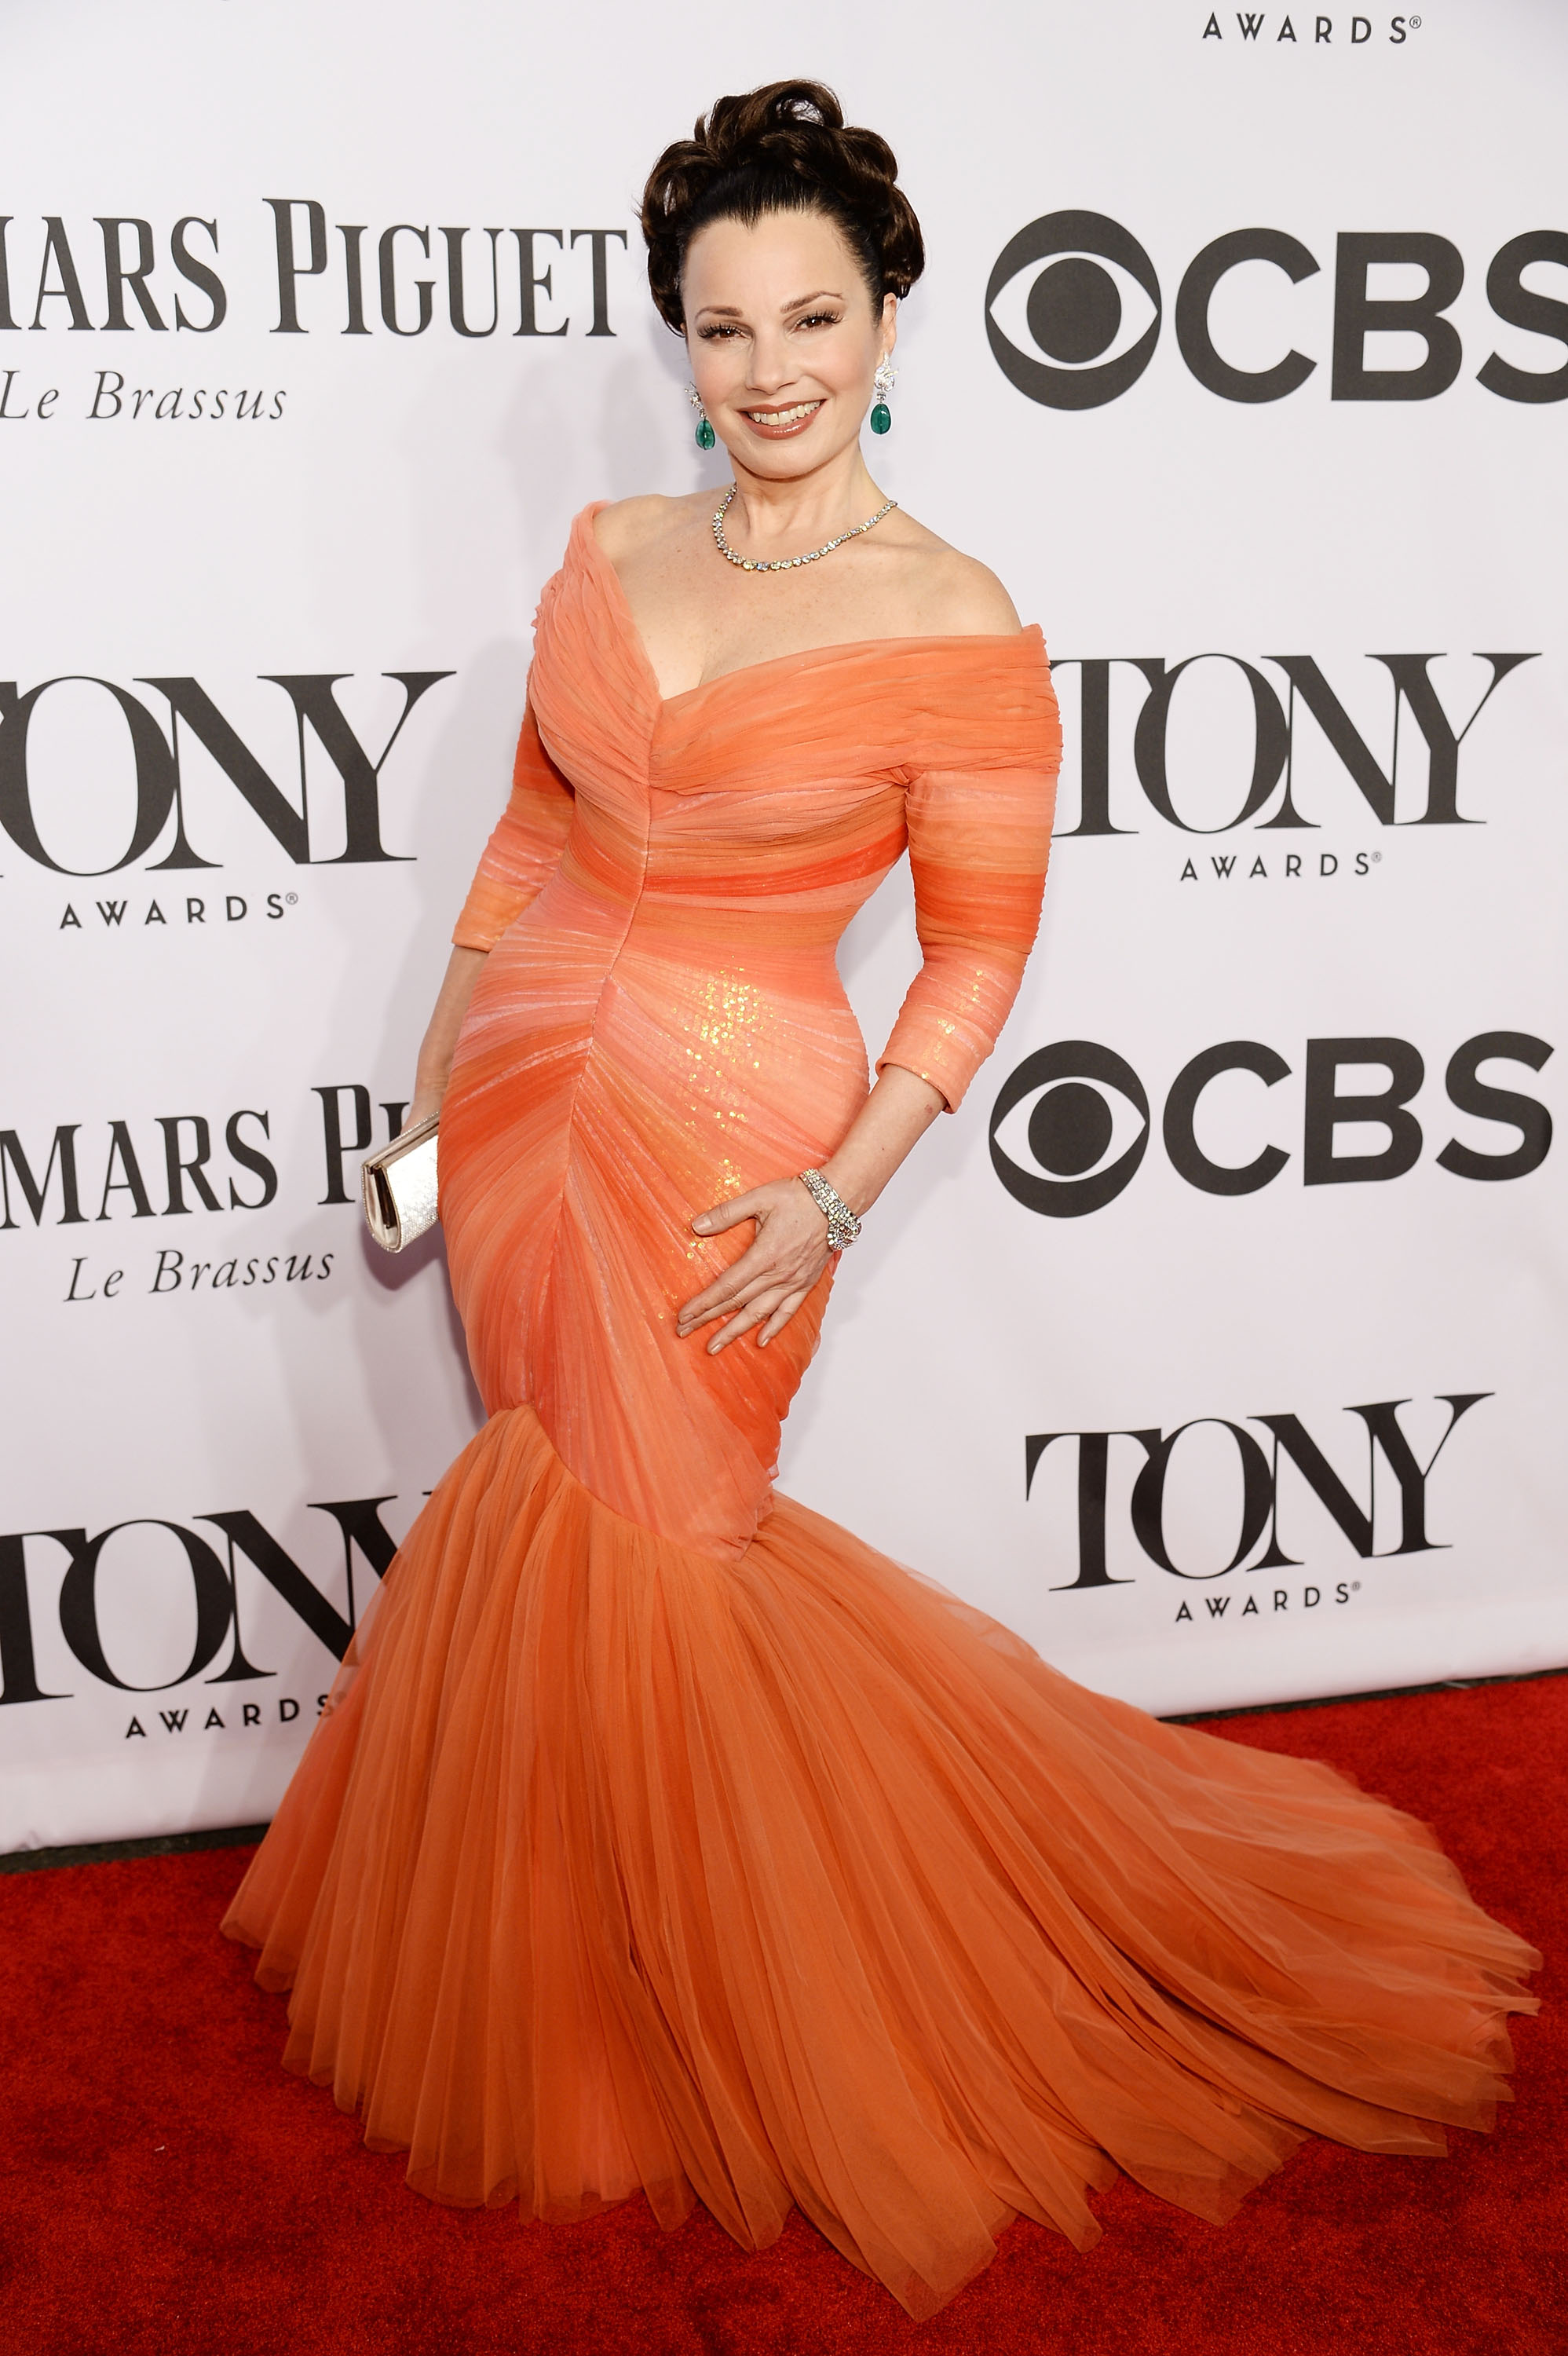 Actress Fran Drescher attends the 68th Annual Tony Awards at Radio City Music Hall on June 8, 2014 in New York City.